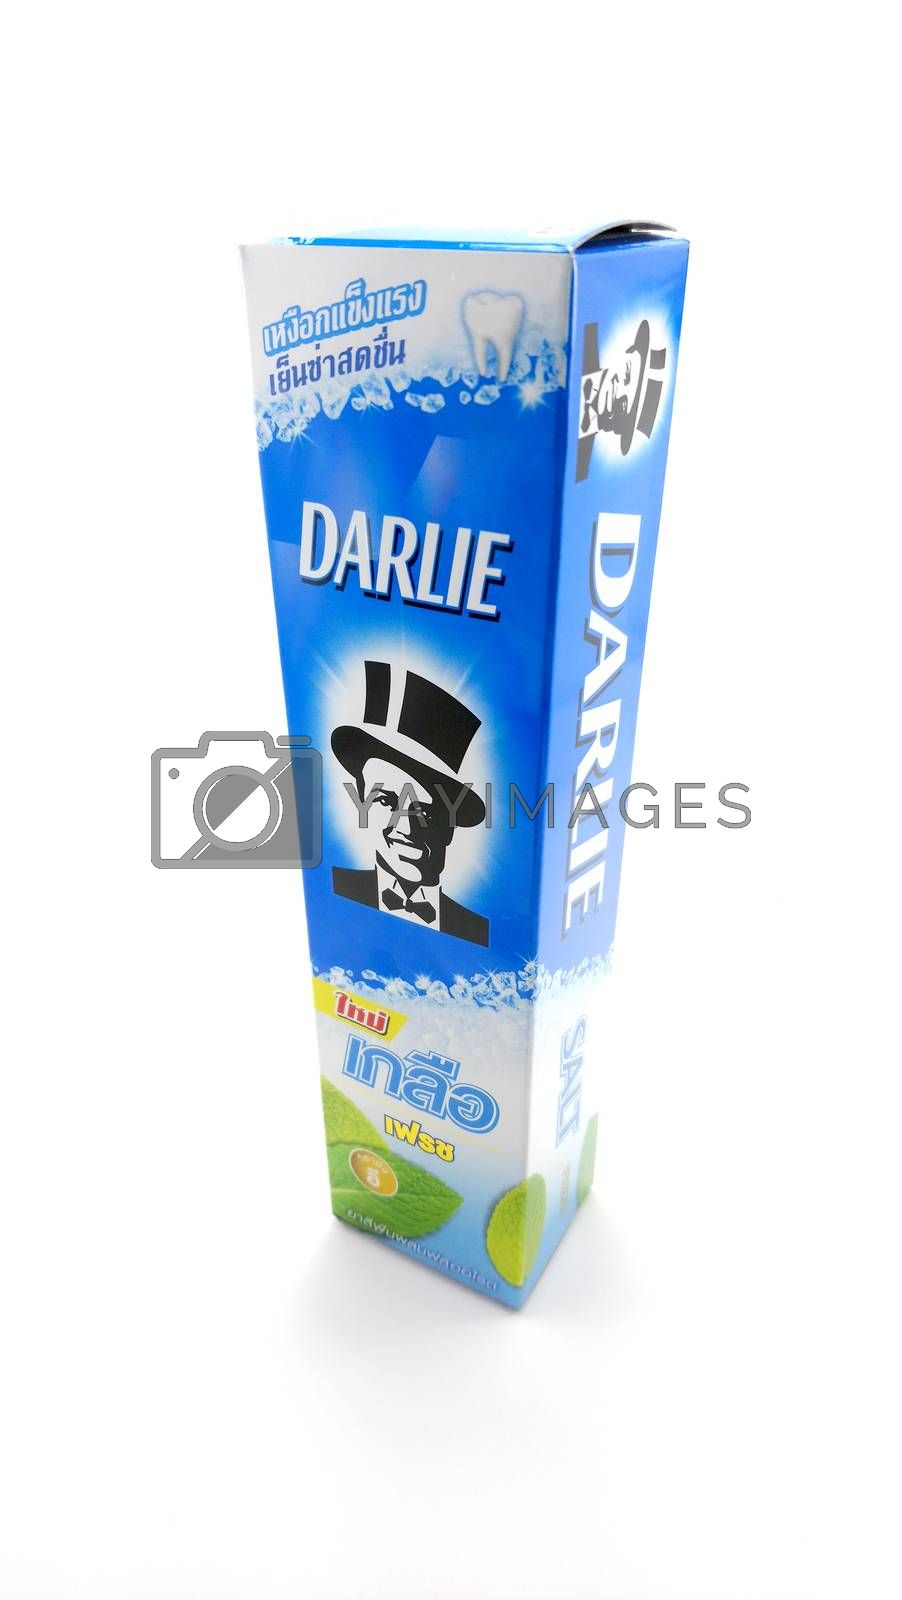 Darlie salt toothpaste in Manila, Philippines by imwaltersy